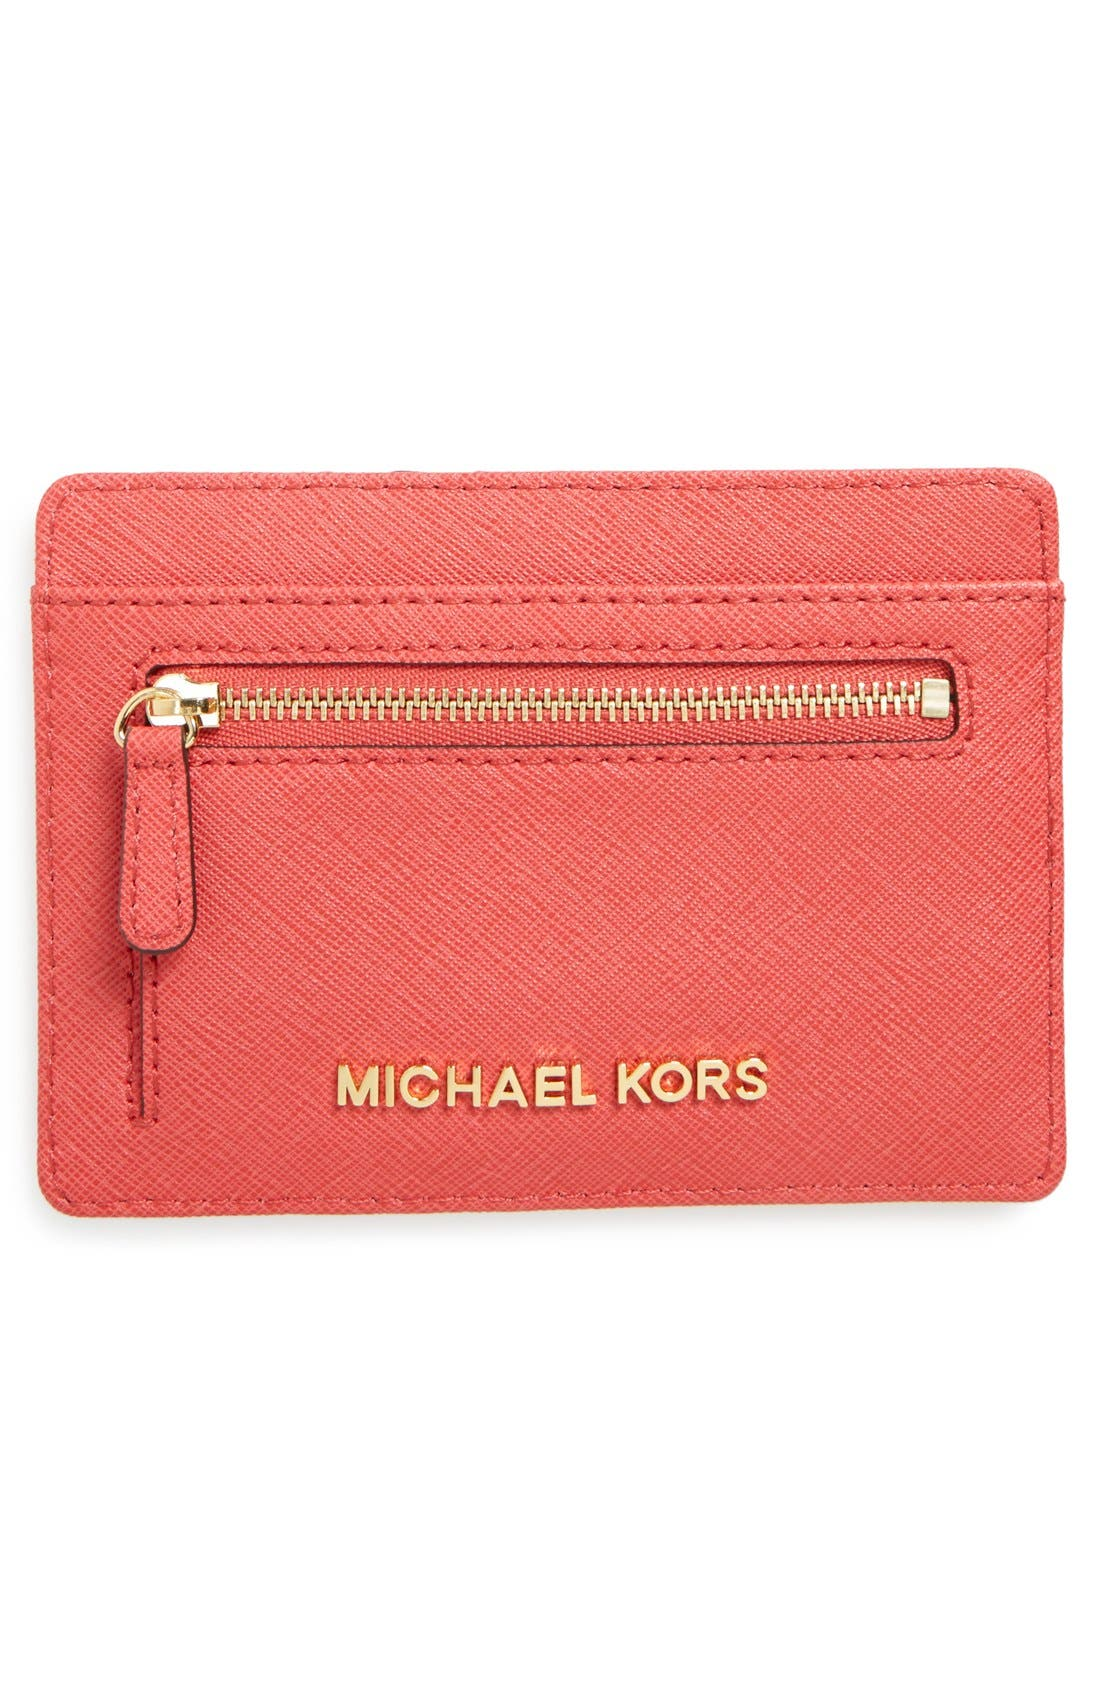 Main Image - MICHAEL Michael Kors \u0027Jet Set\u0027 Saffiano Leather Card Case